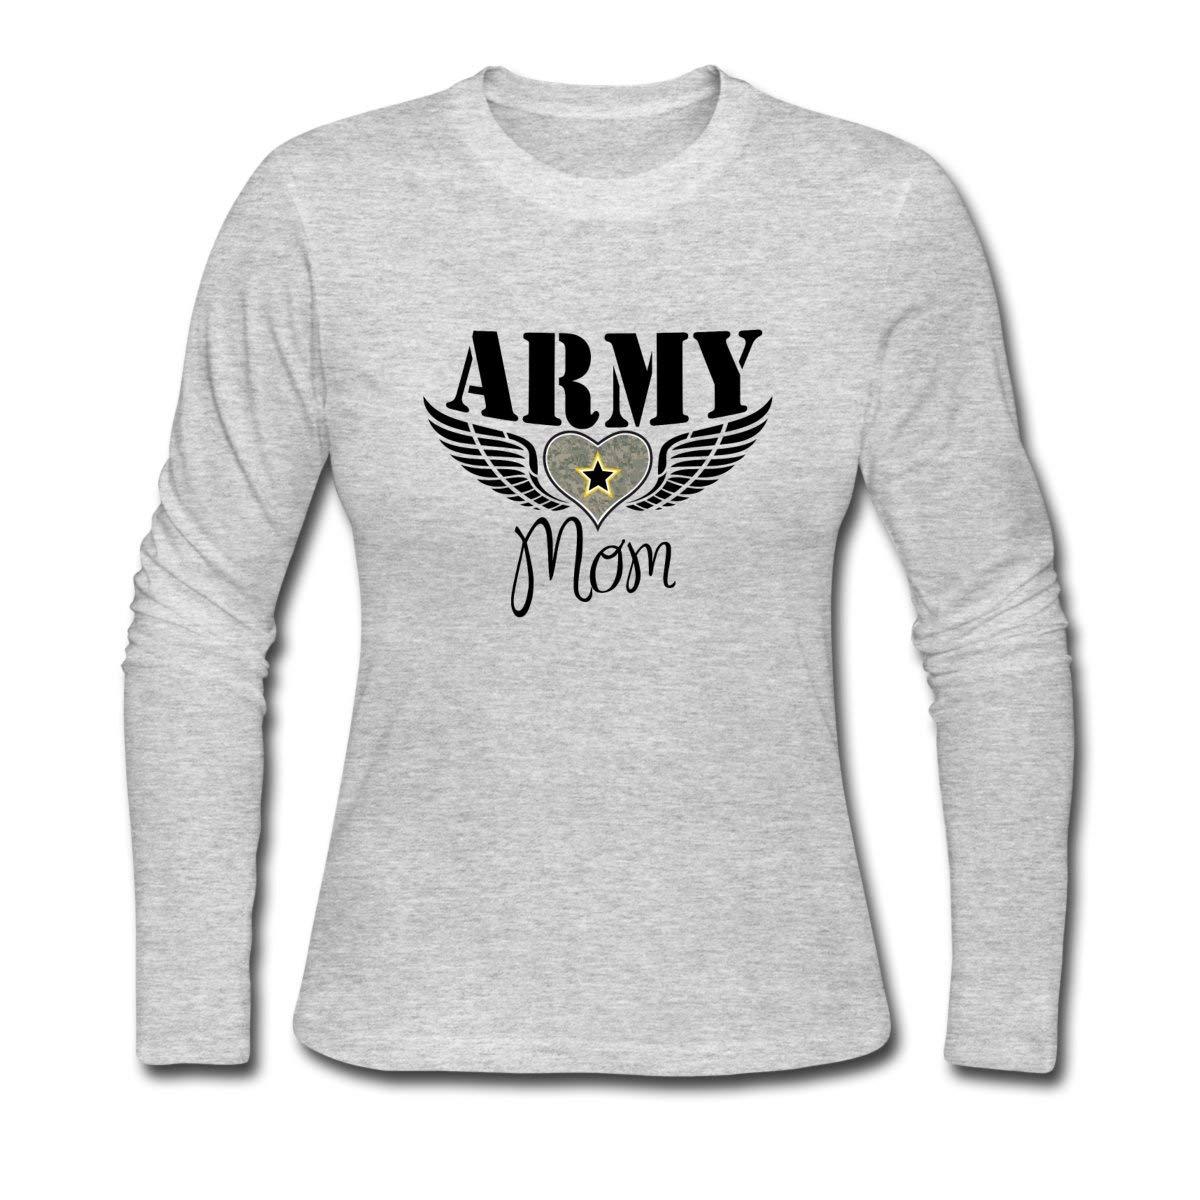 Spread Army Mom Winged Heart Shirts